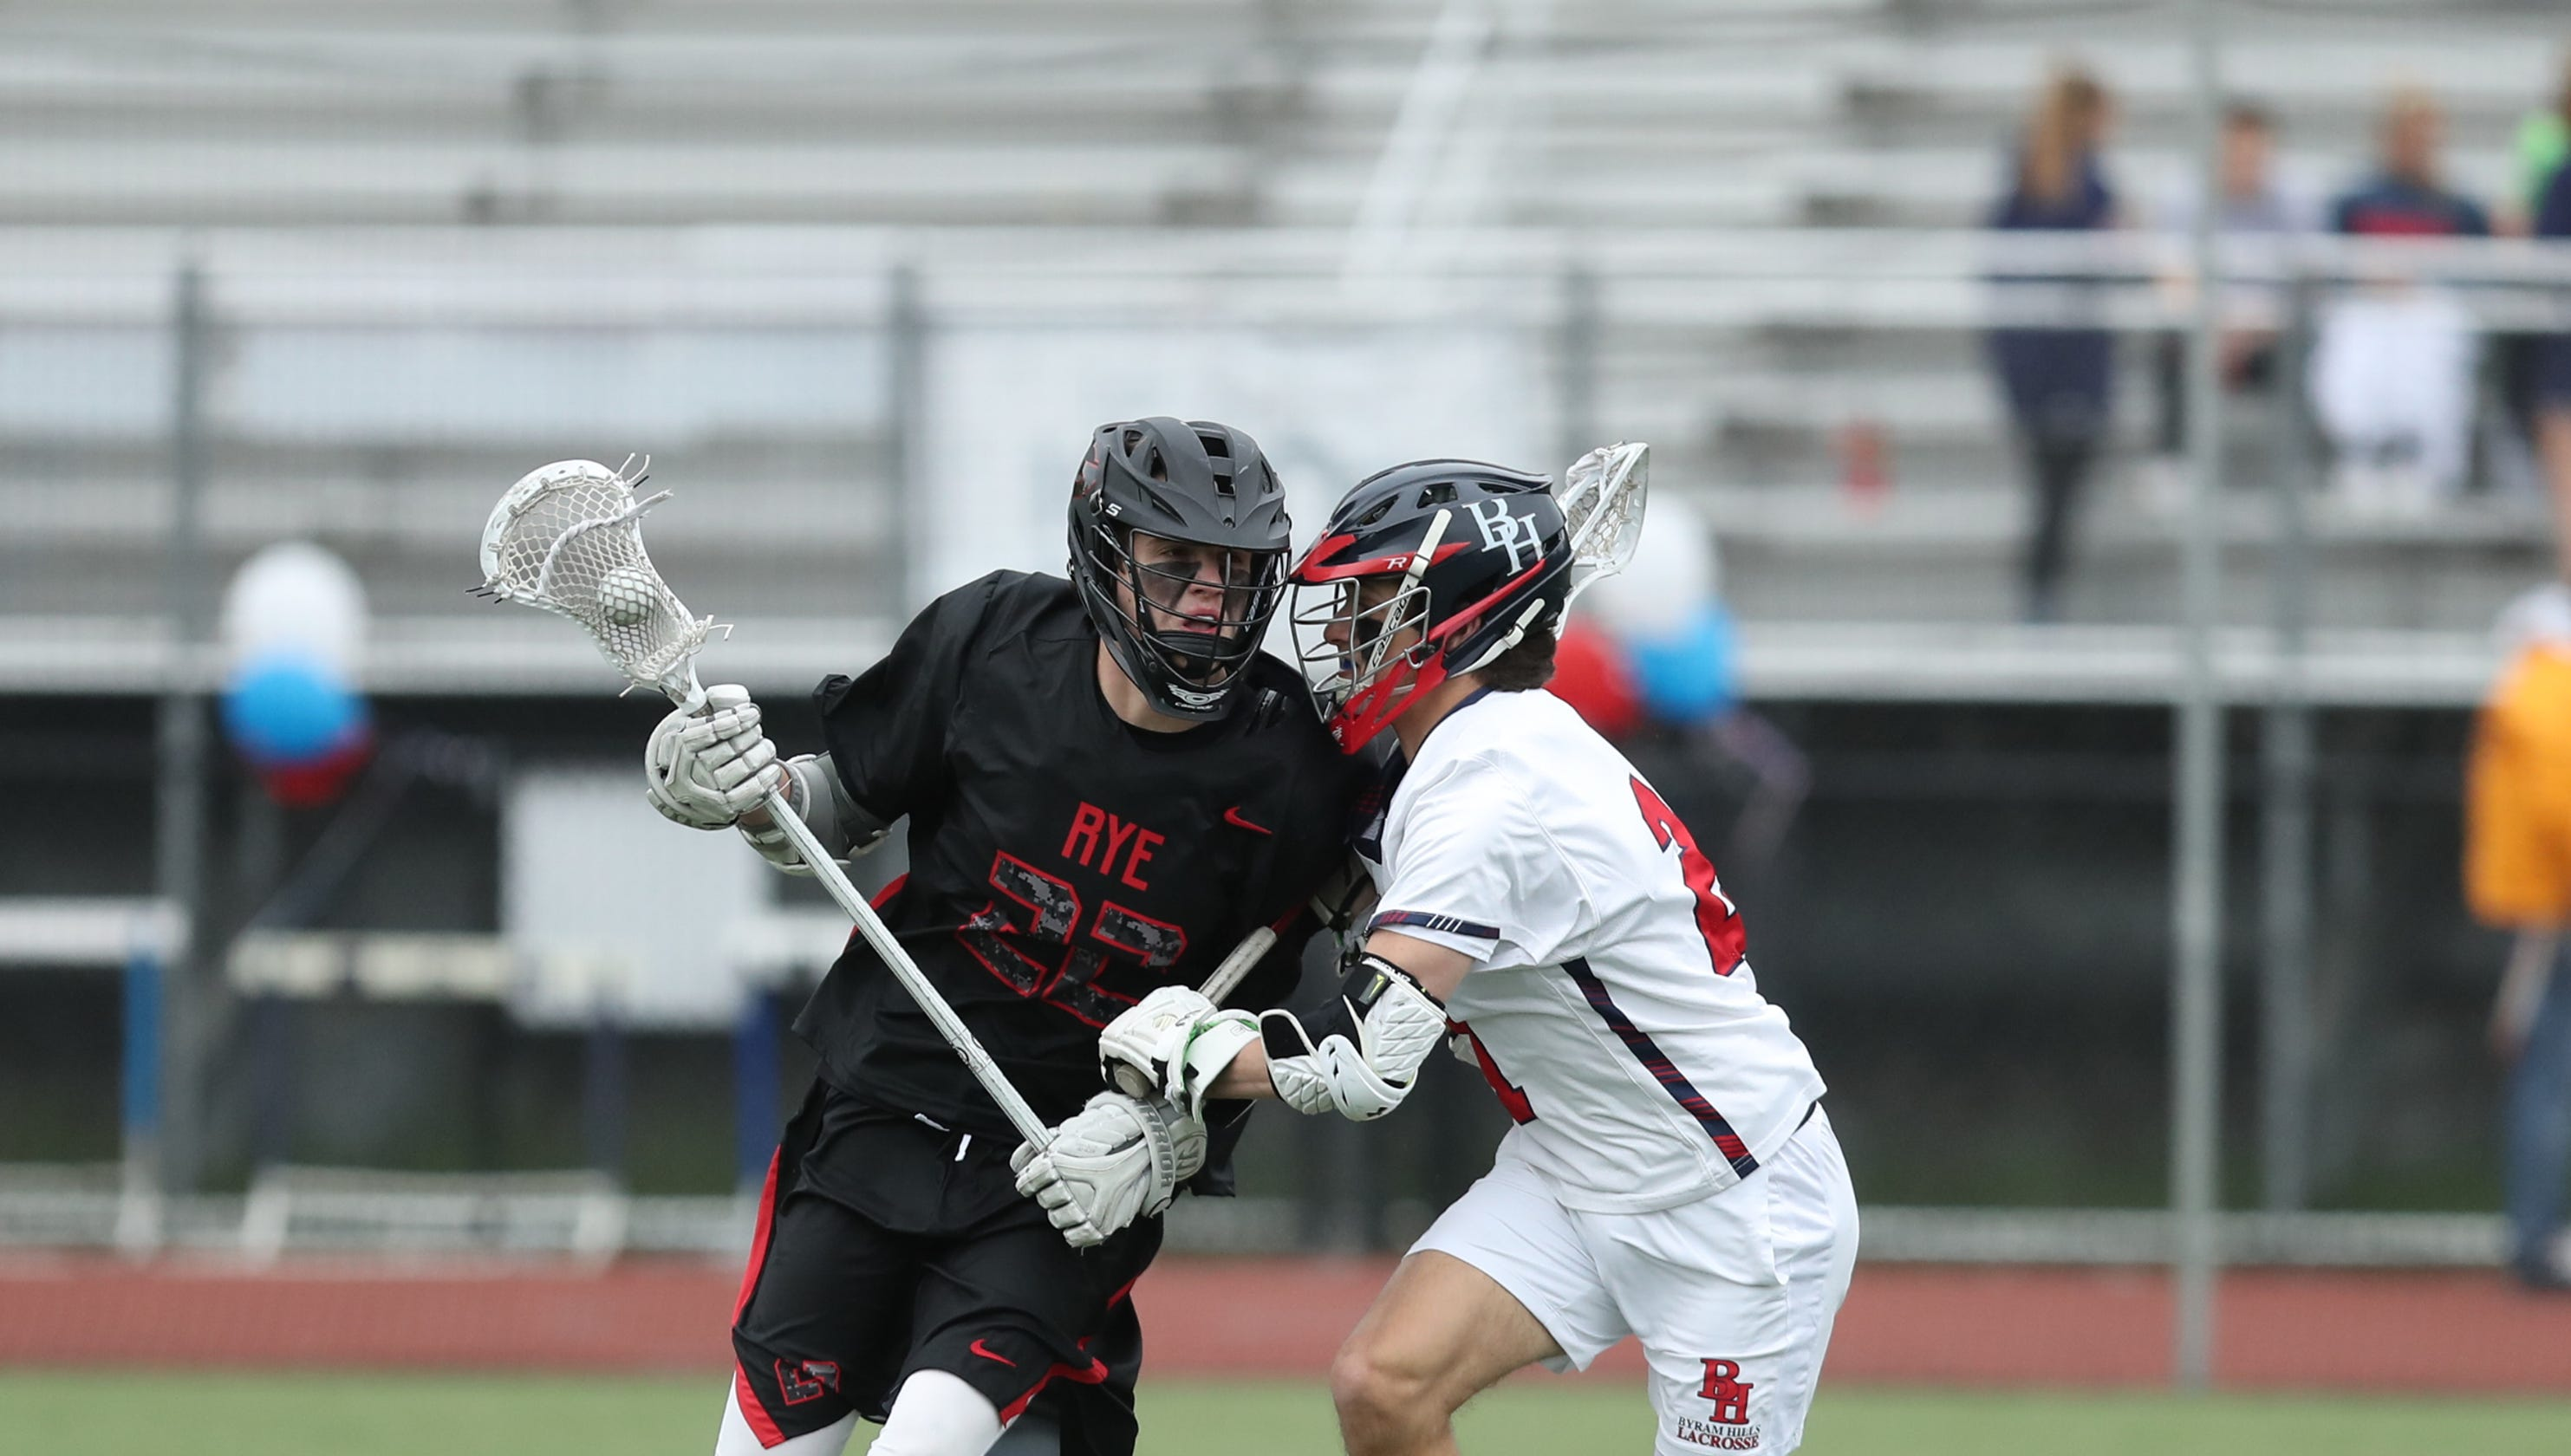 Boys lacrosse: Rye has momentum for playoffs after stifling